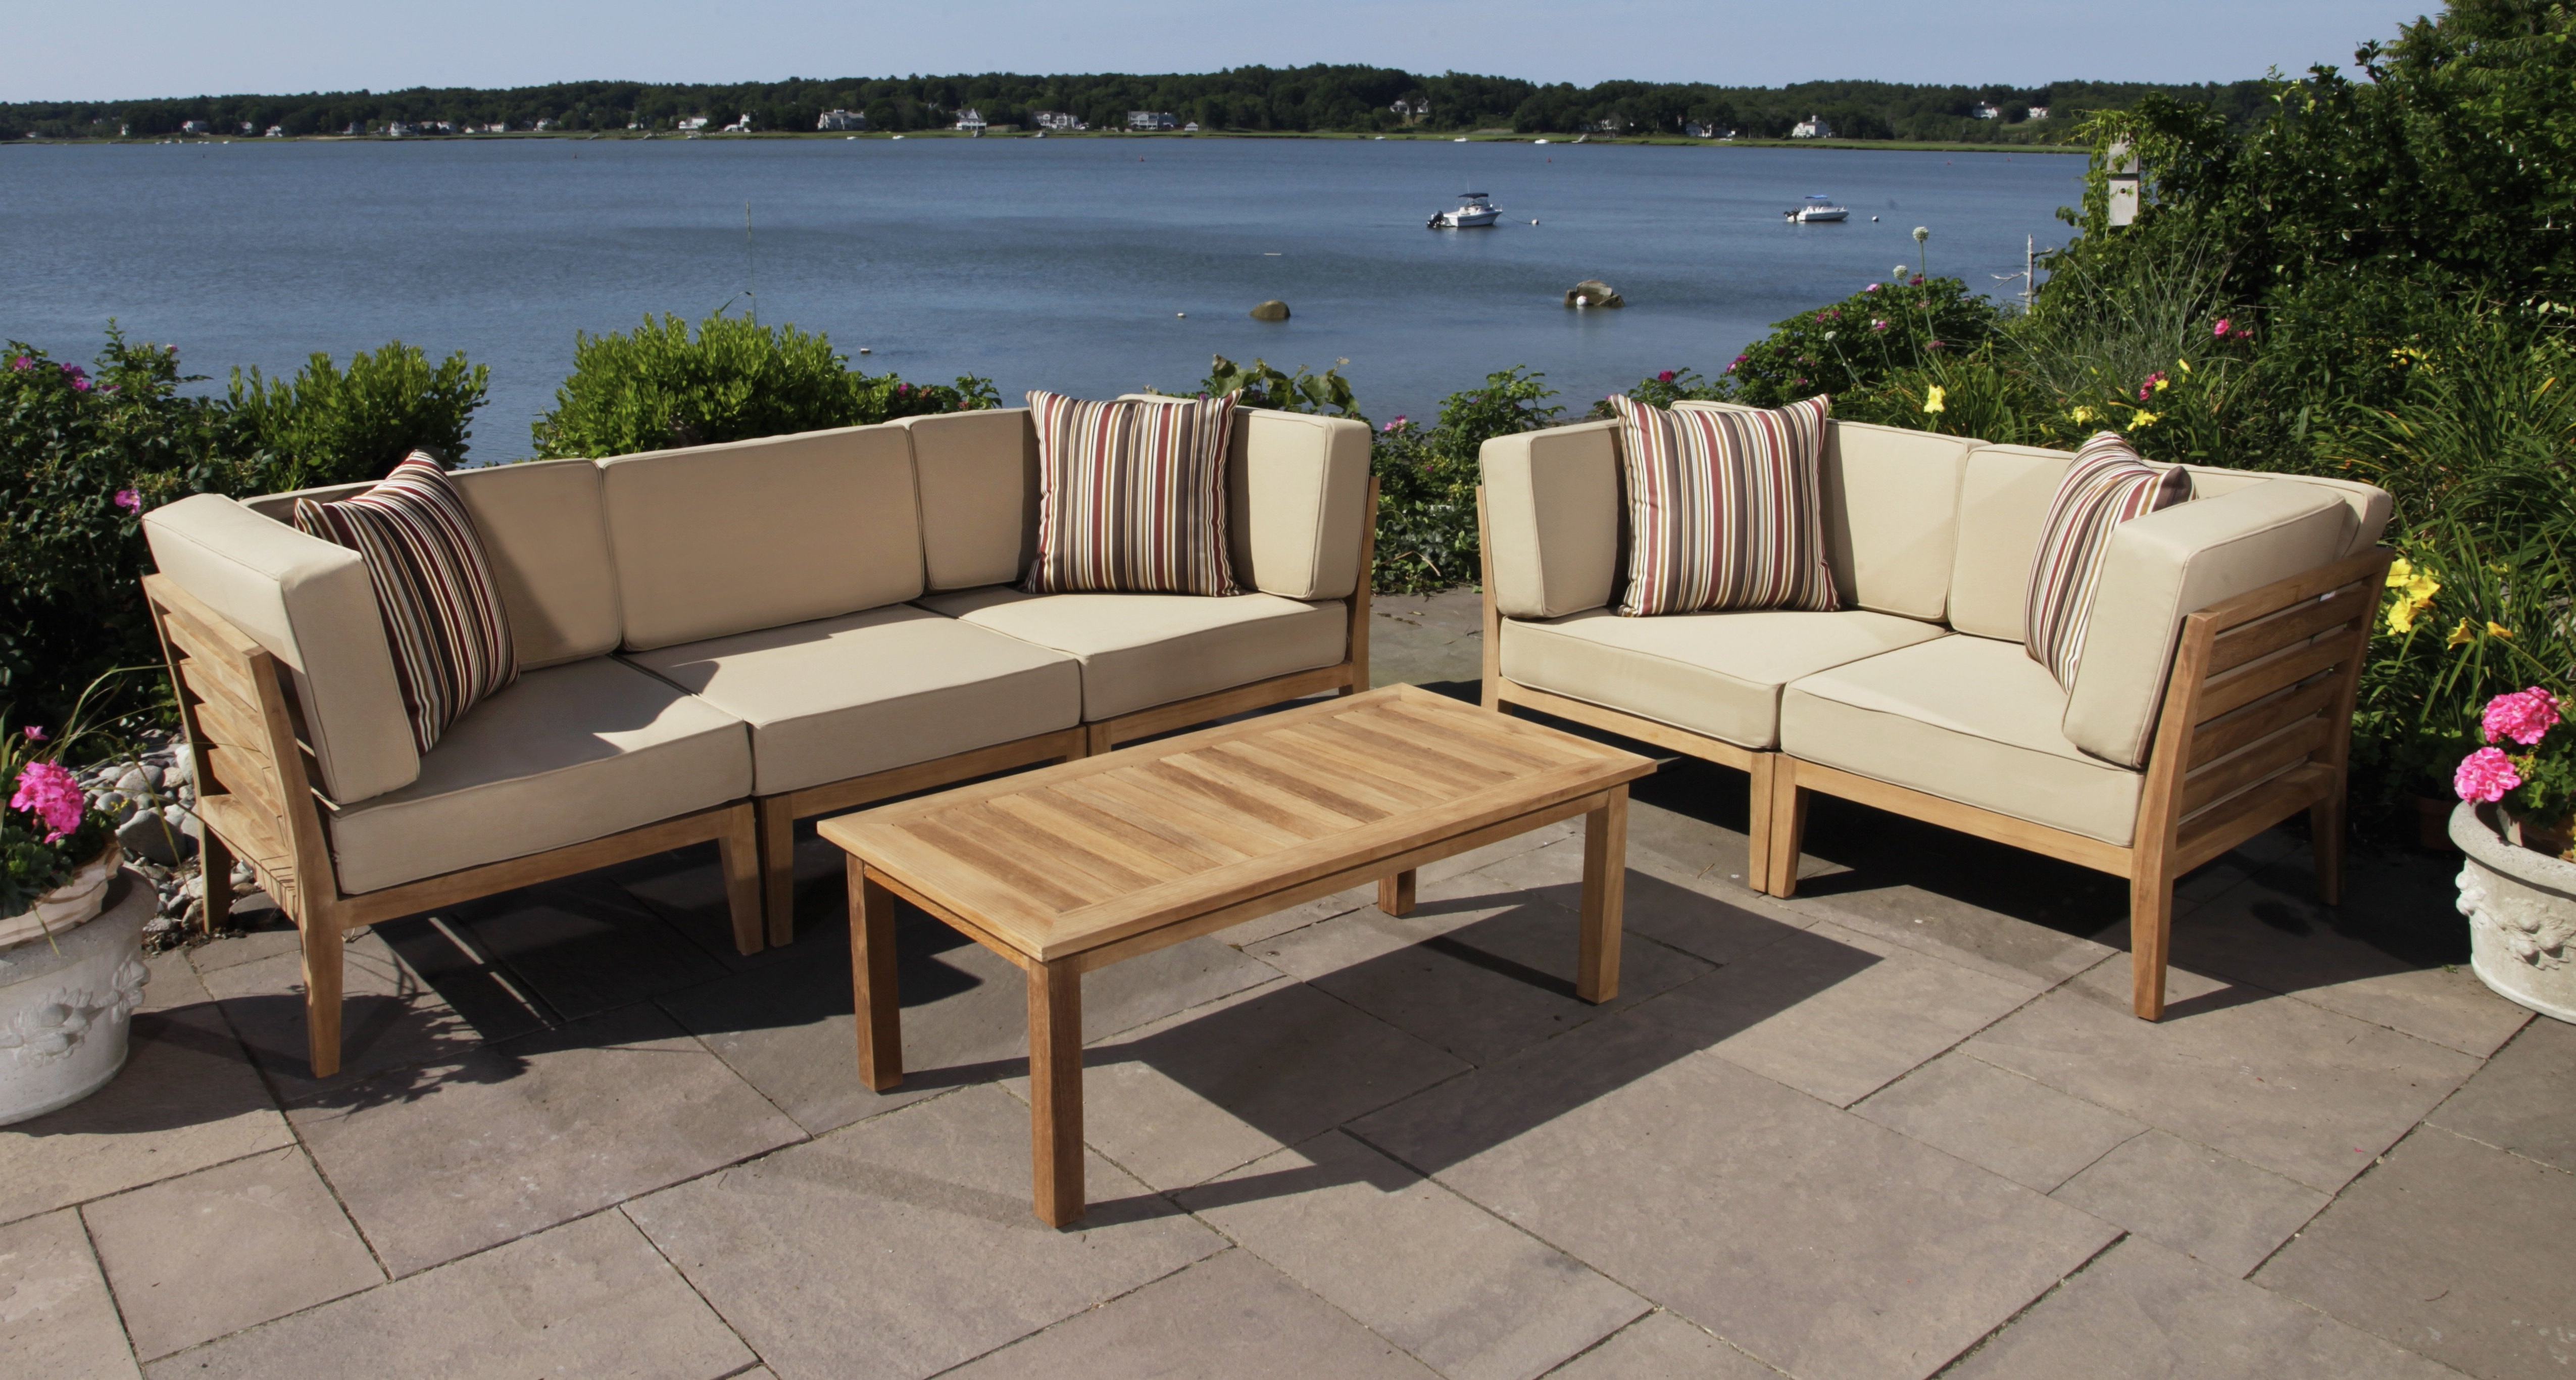 Well Known Antonia Teak Patio Sectionals With Cushions Throughout Bali 6 Piece Teak Sectional Set With Cushions (View 22 of 25)